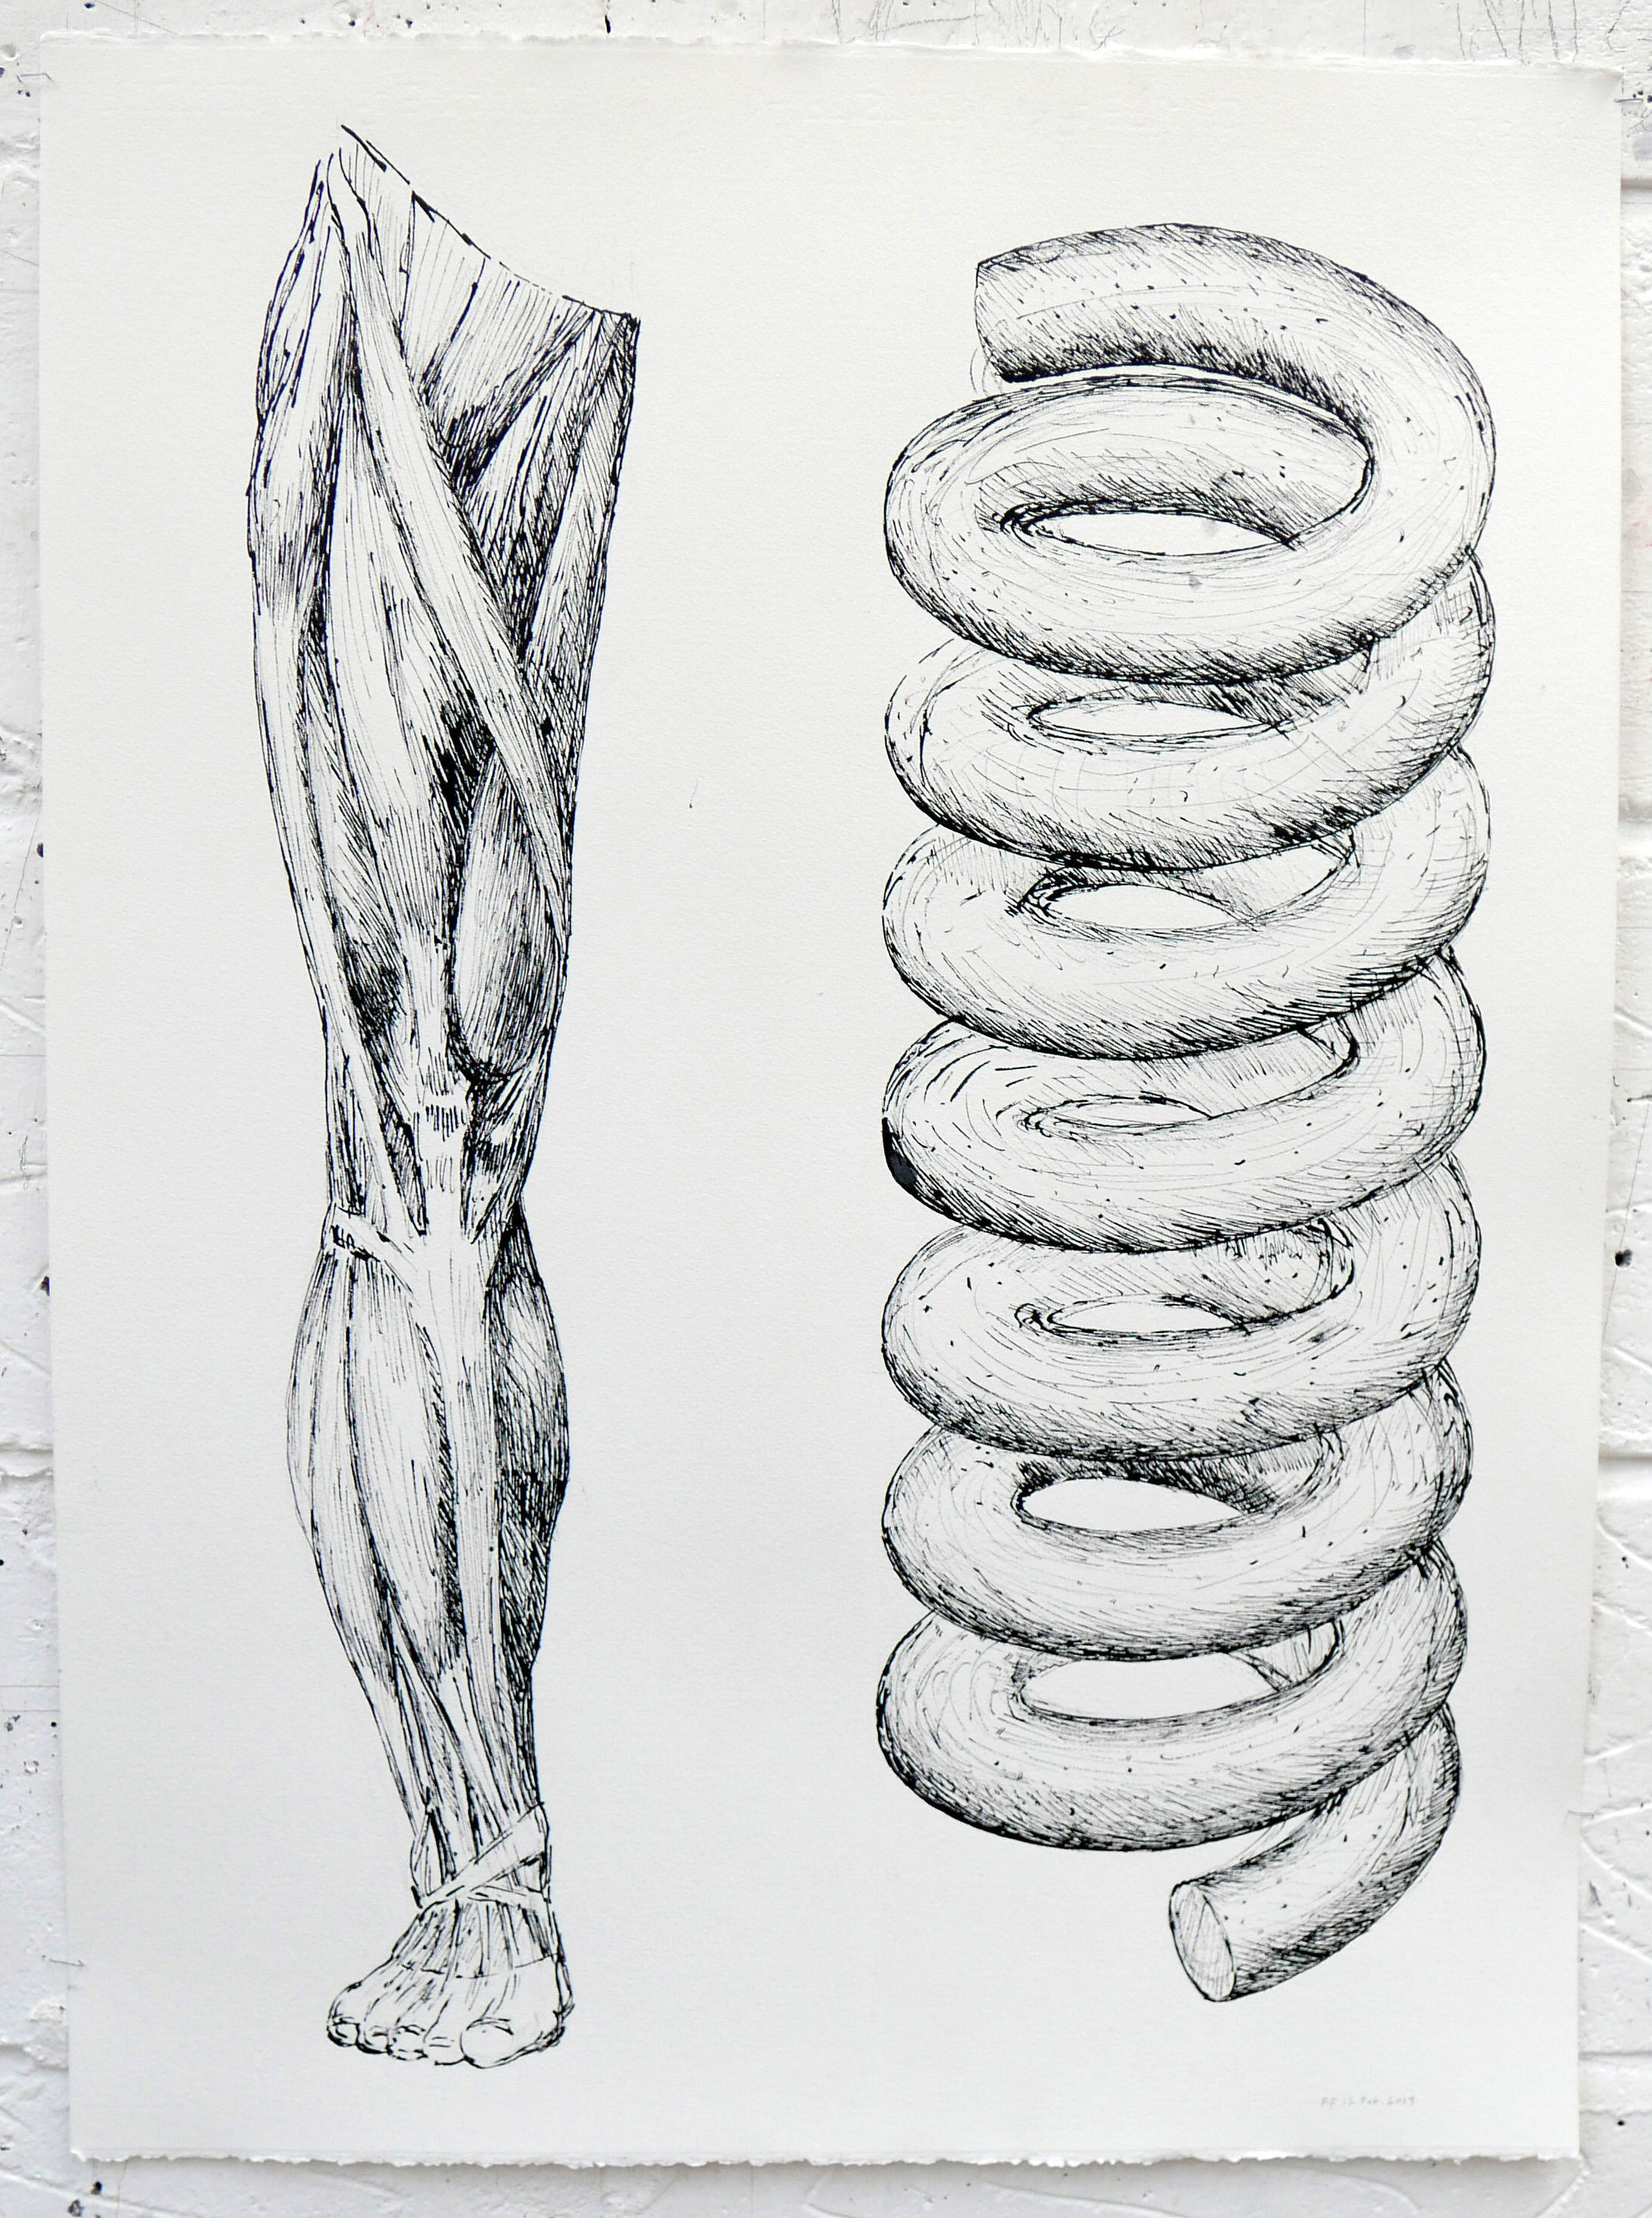 Drawings 2019 Painting 2019 Polythene drawing Plait Spoon 032.JPG